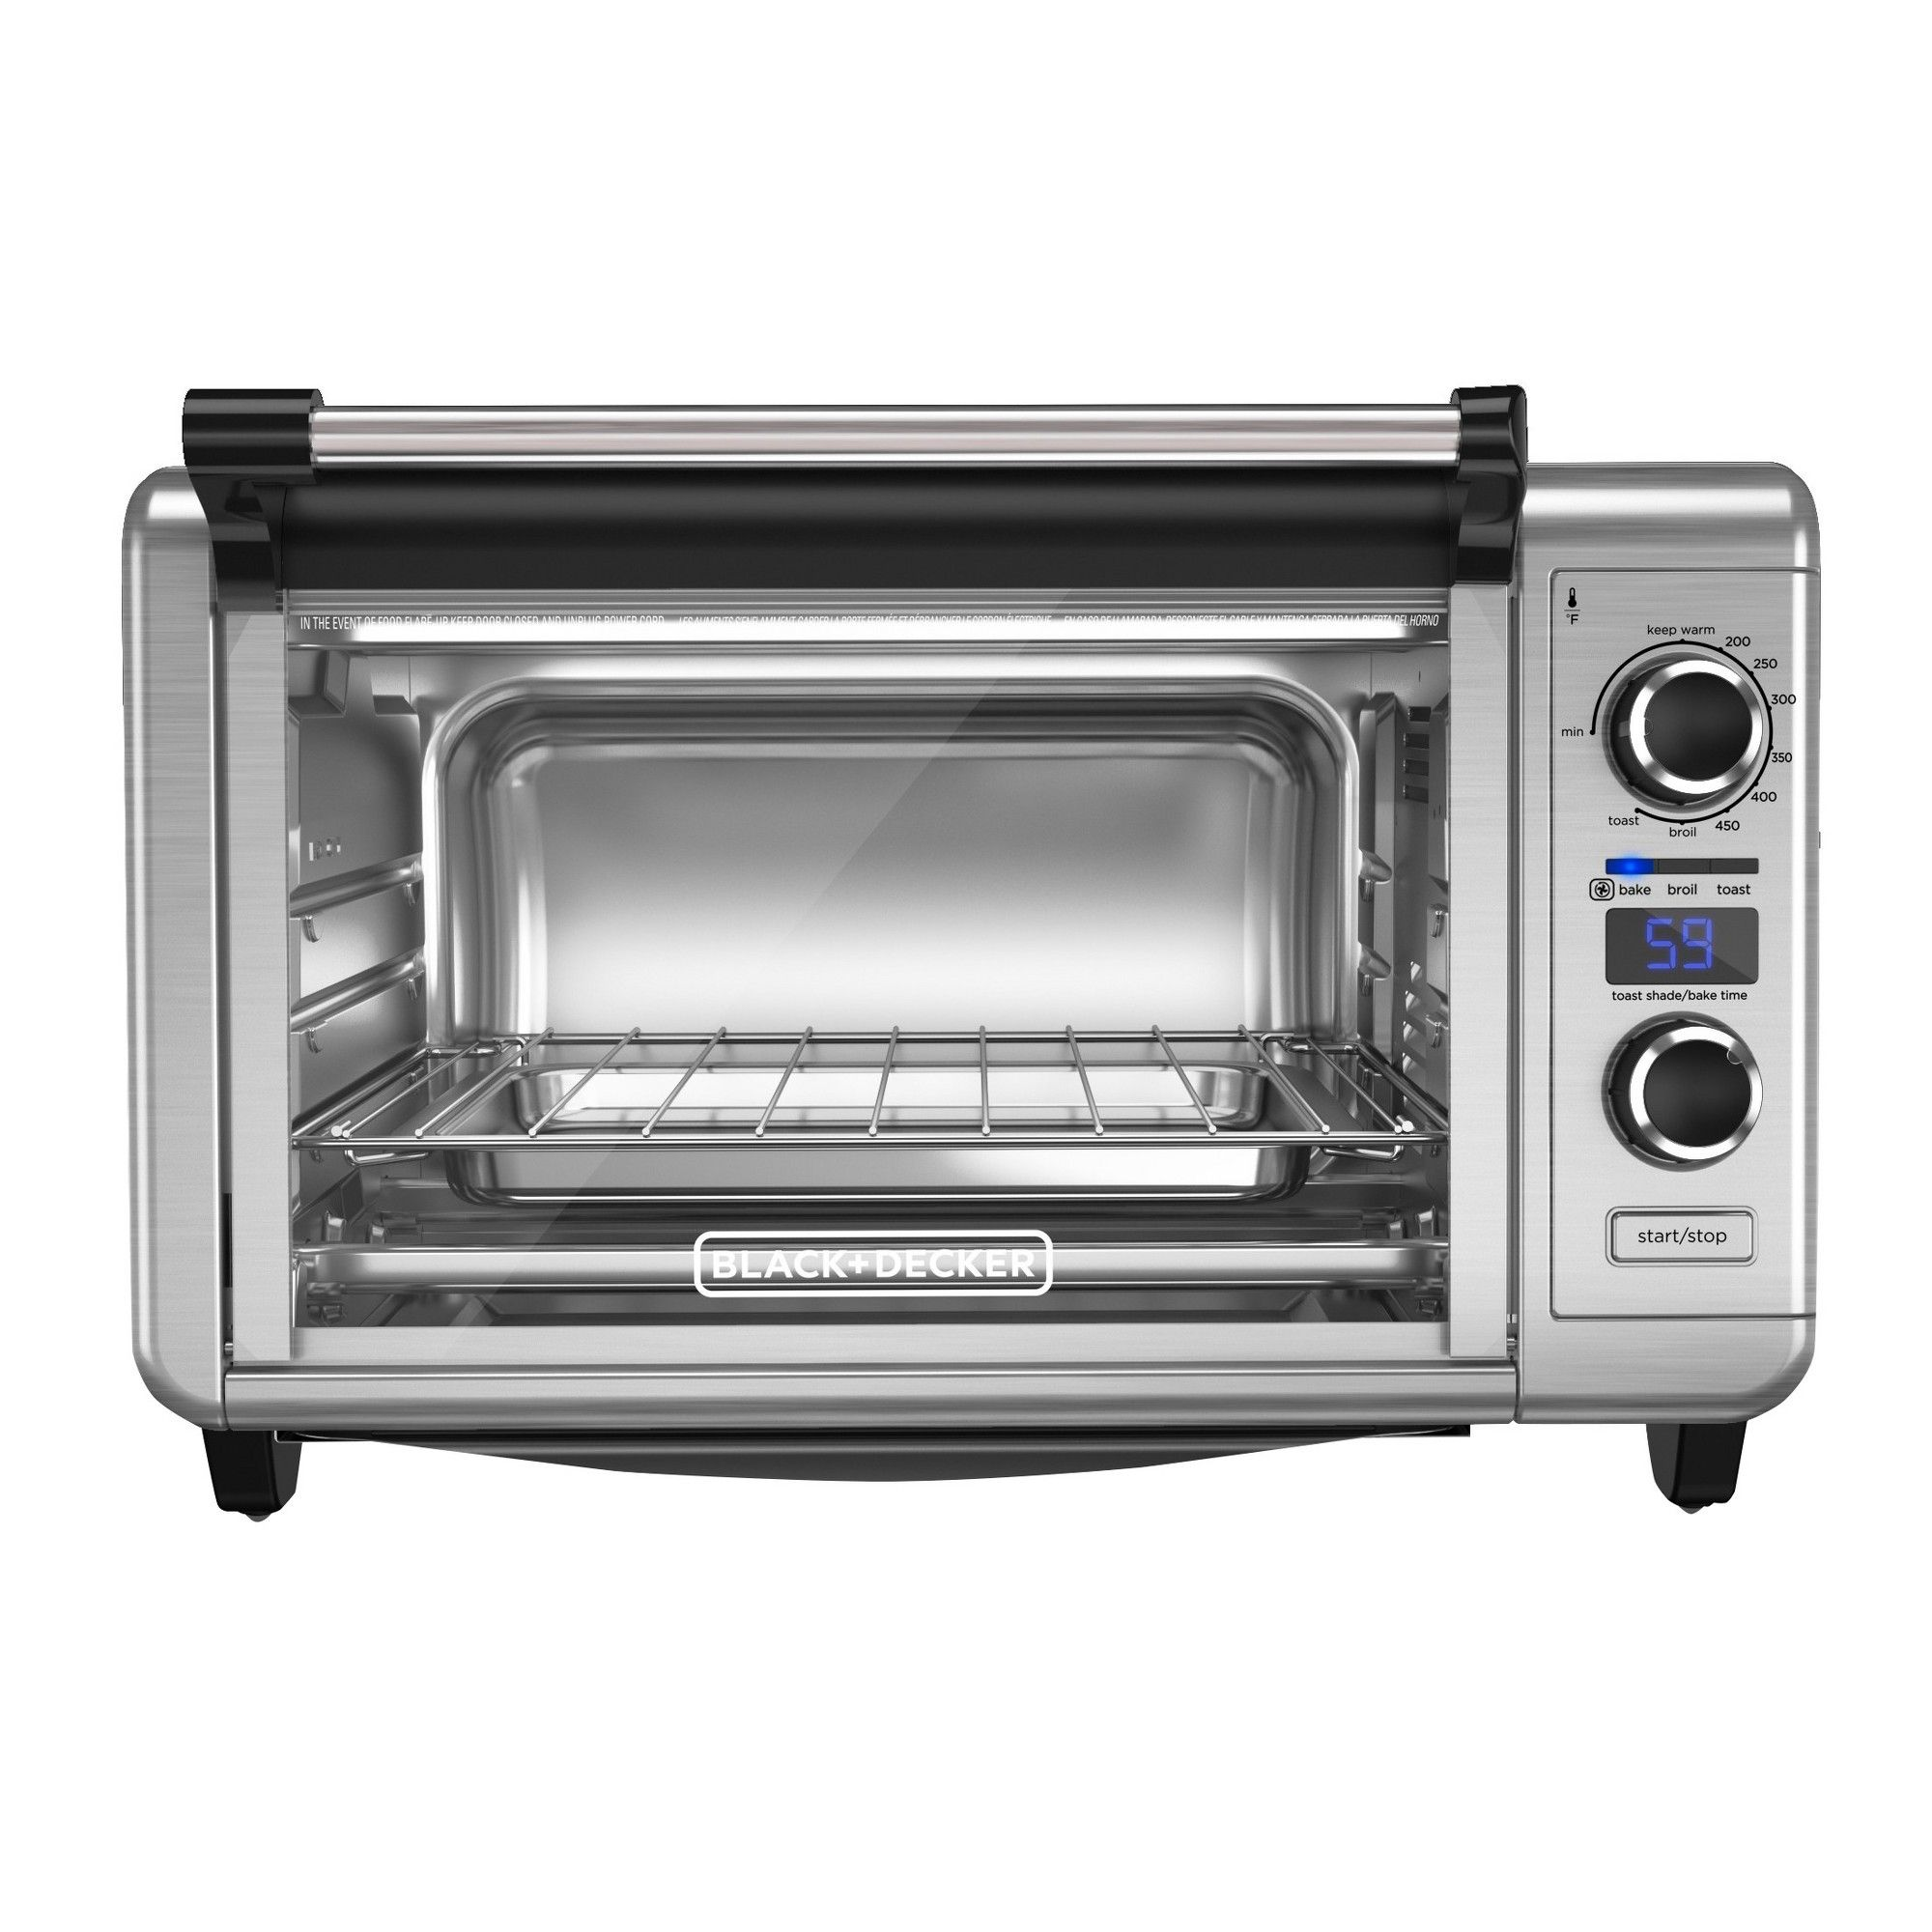 oven convection beach com breville view slice dp larger amazon hamilton toaster